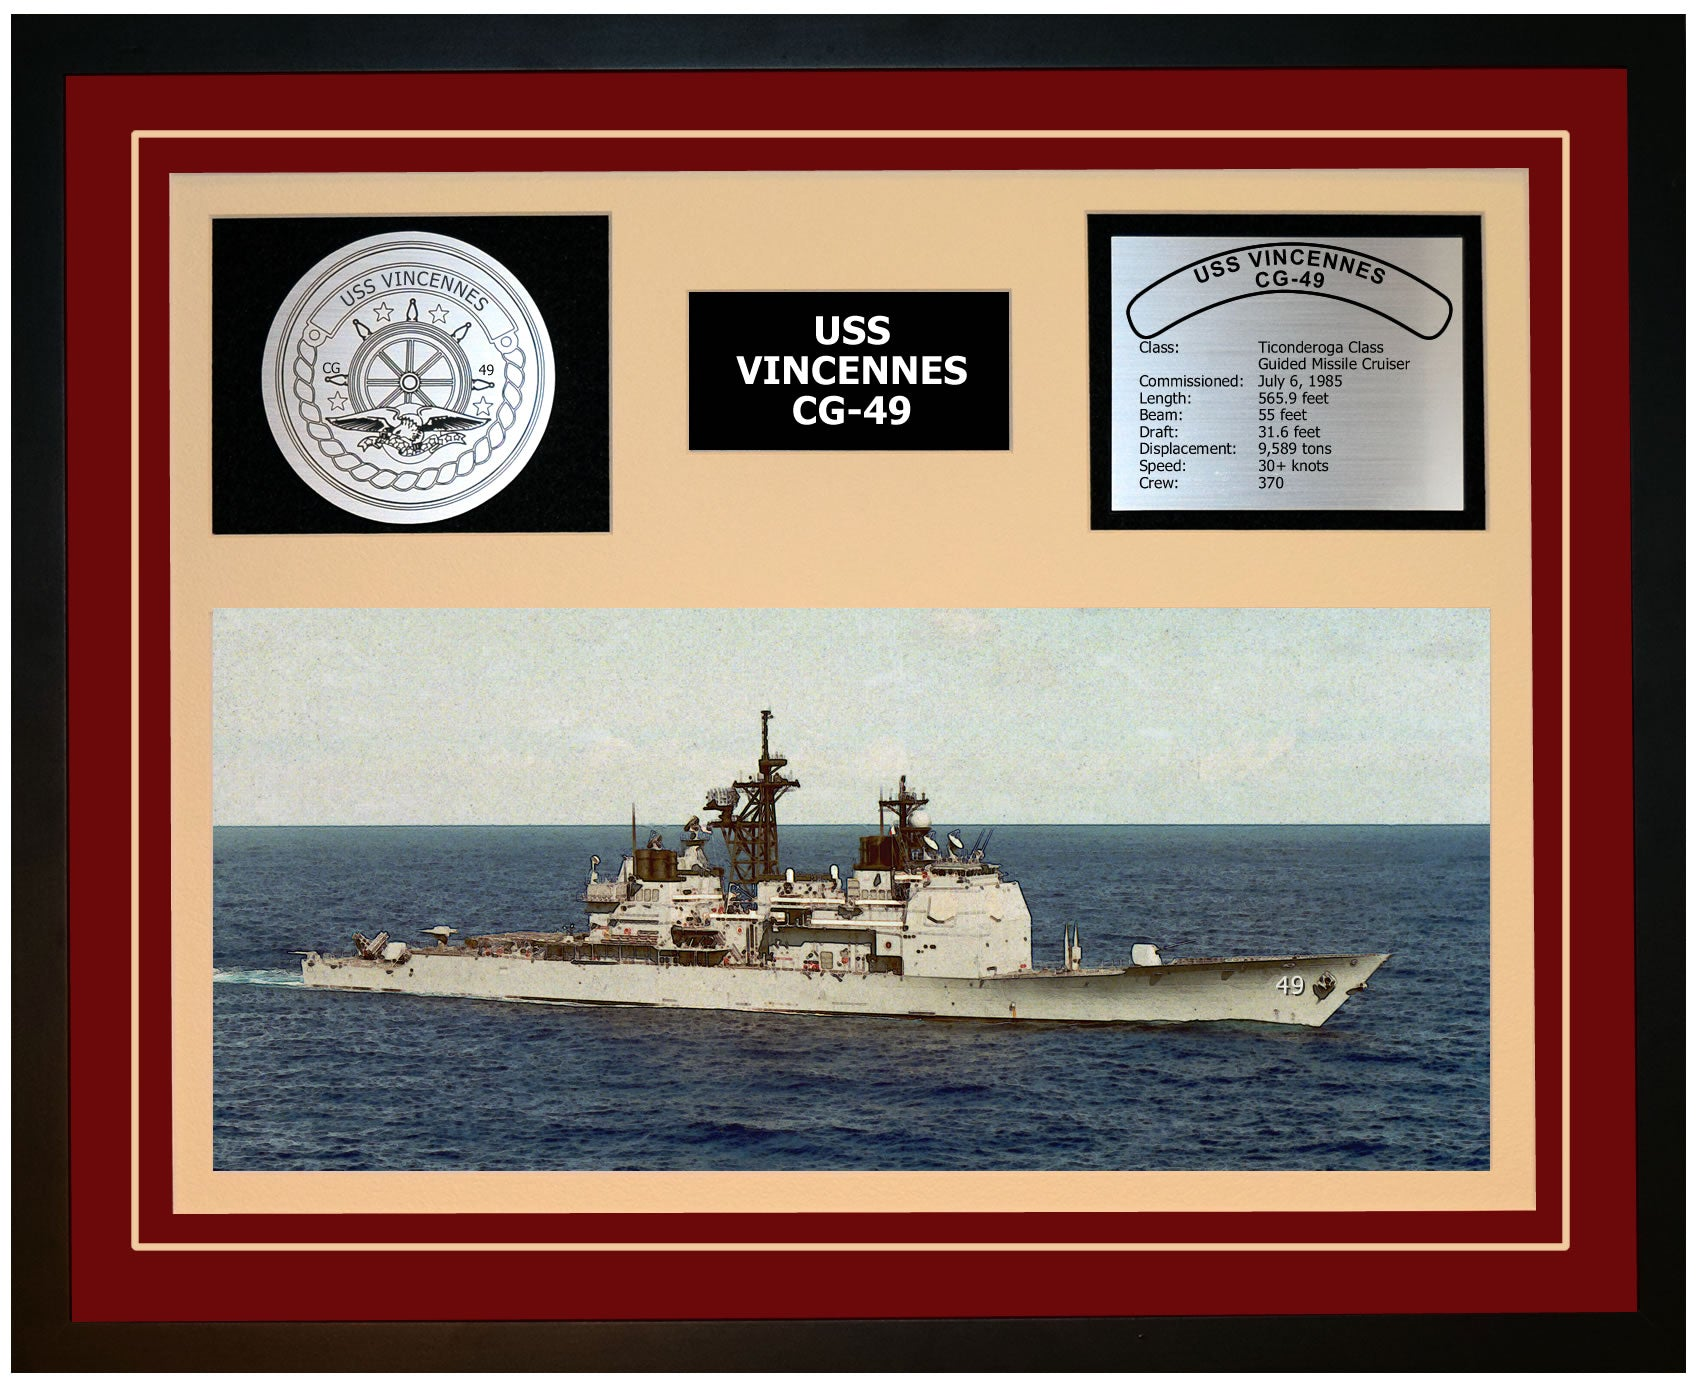 USS VINCENNES CG-49 Framed Navy Ship Display Burgundy